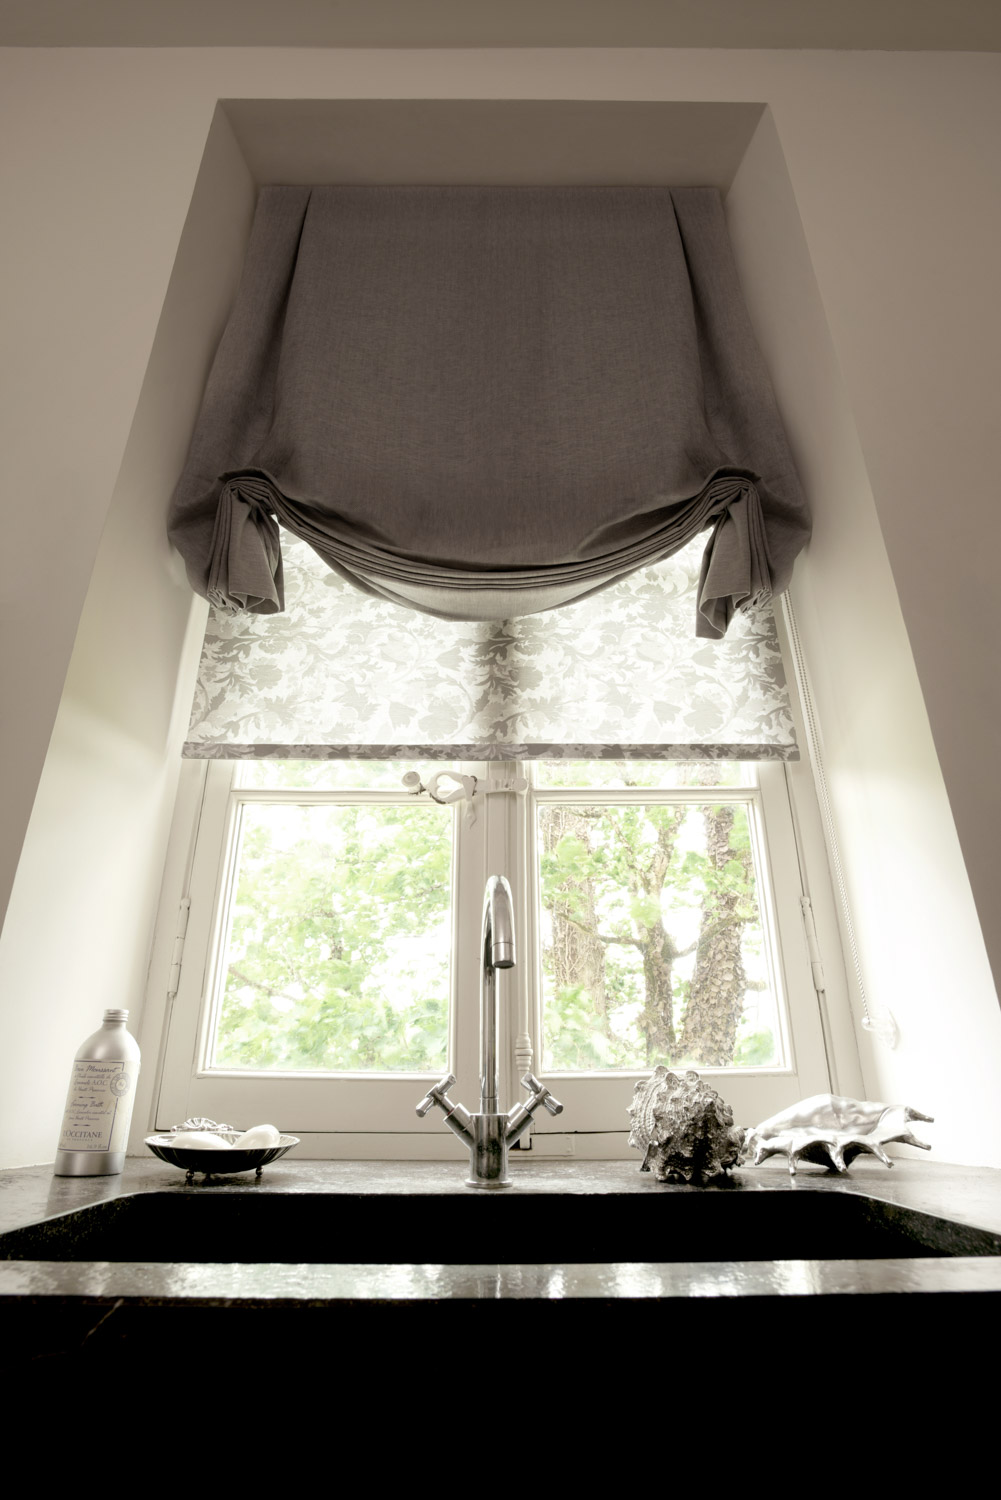 Try a decorative tulip roman shade in a rich fabric. You can even layer it over a light filtering roller shade for extra privacy on your bathroom windows.